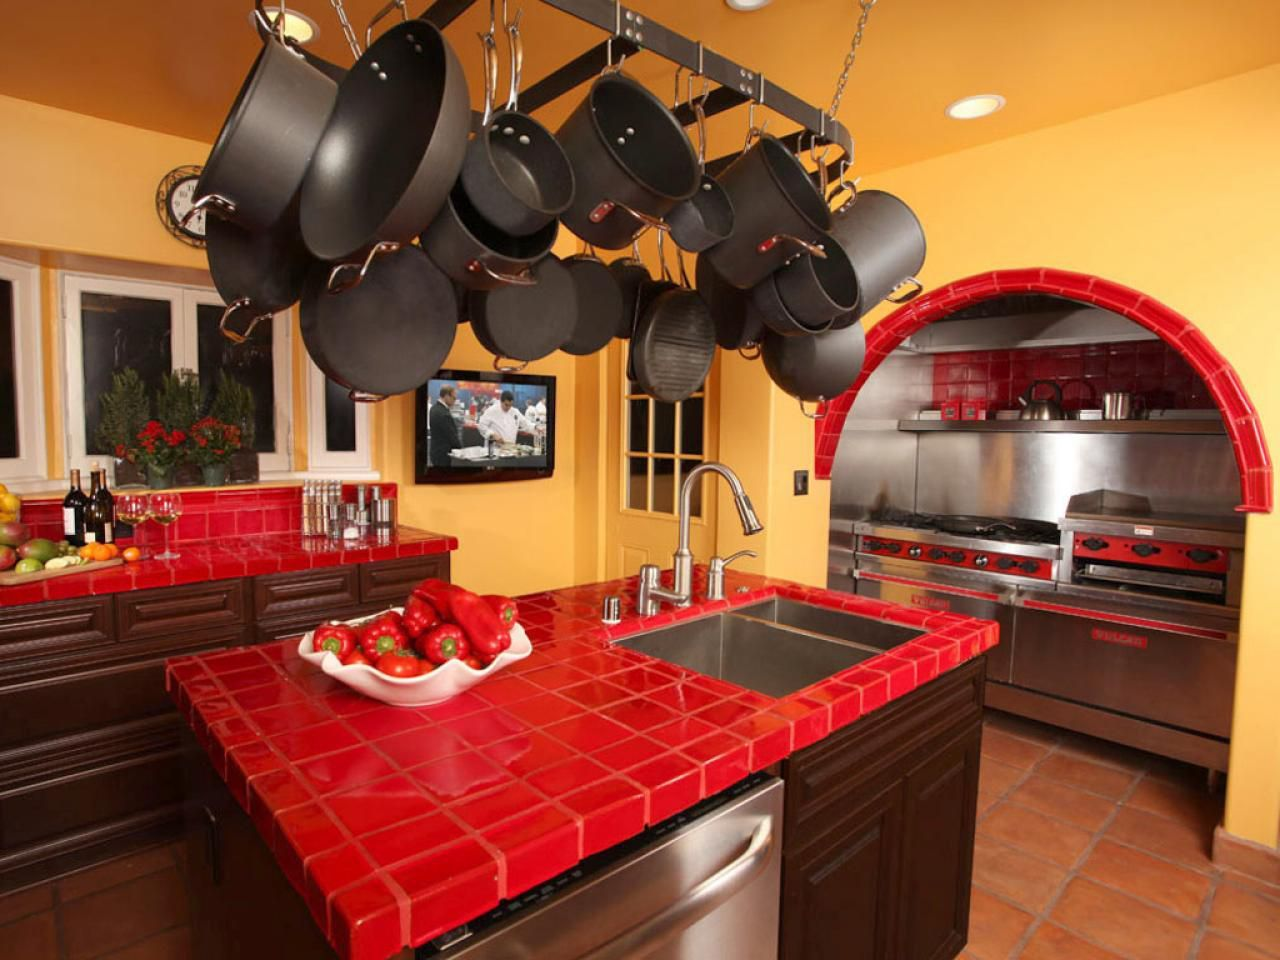 Mexican Kitchen Designed With Orange Wall Colors And Red Ceramic Tile  Countertops With Brown Cabinets :